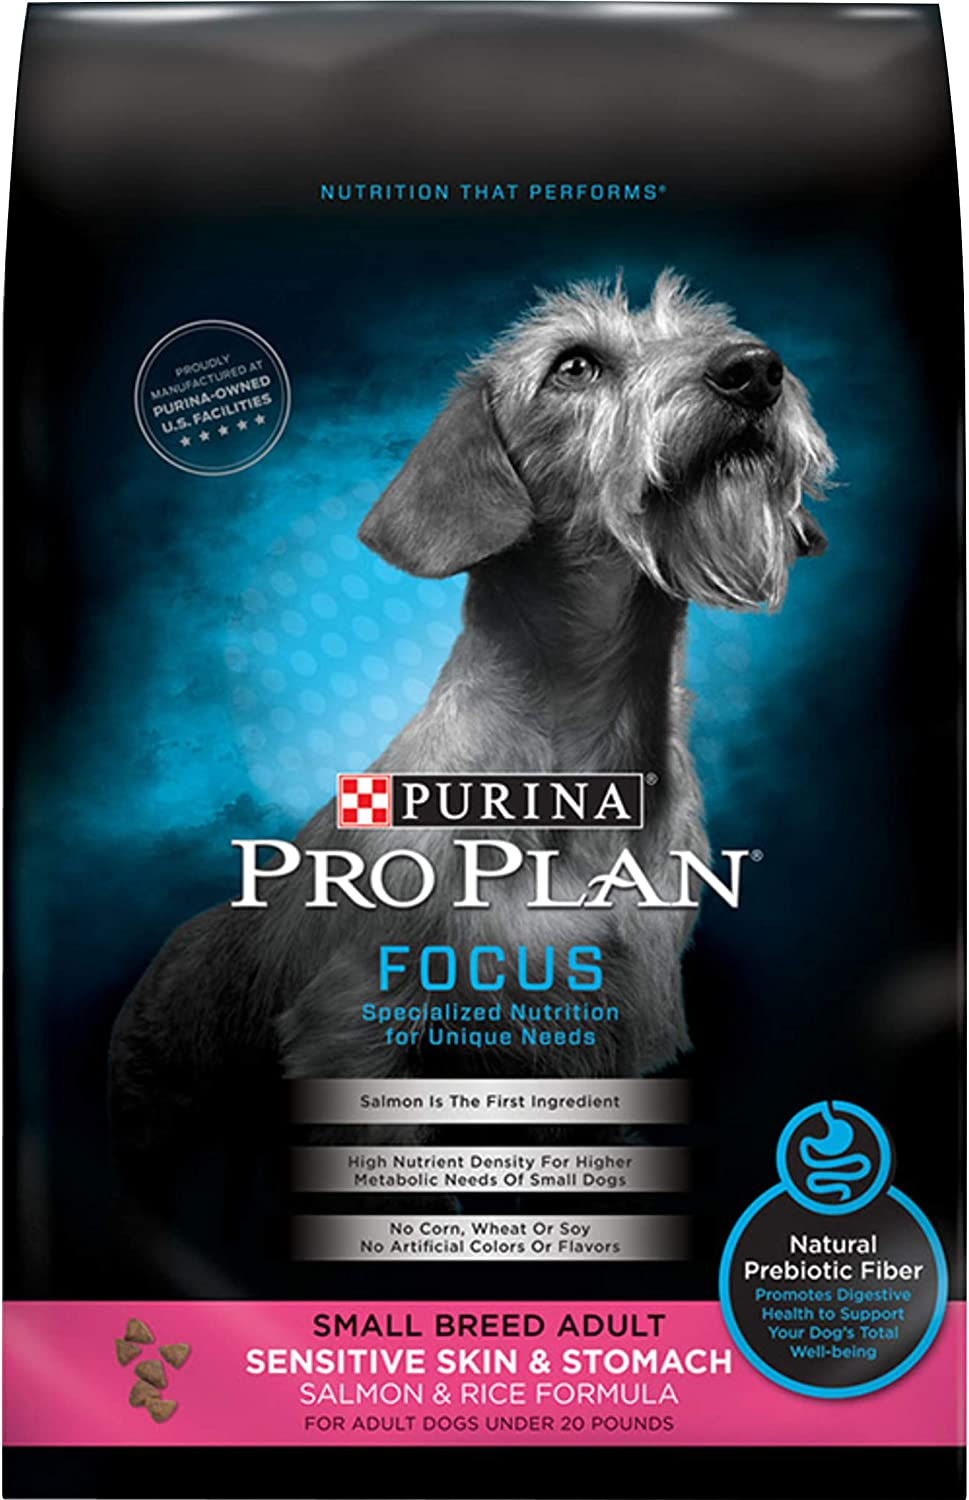 Purina Pro Plan Sensitive Skin & Stomach, High Protein Adult Dry Dog Food & Wet Dog Food